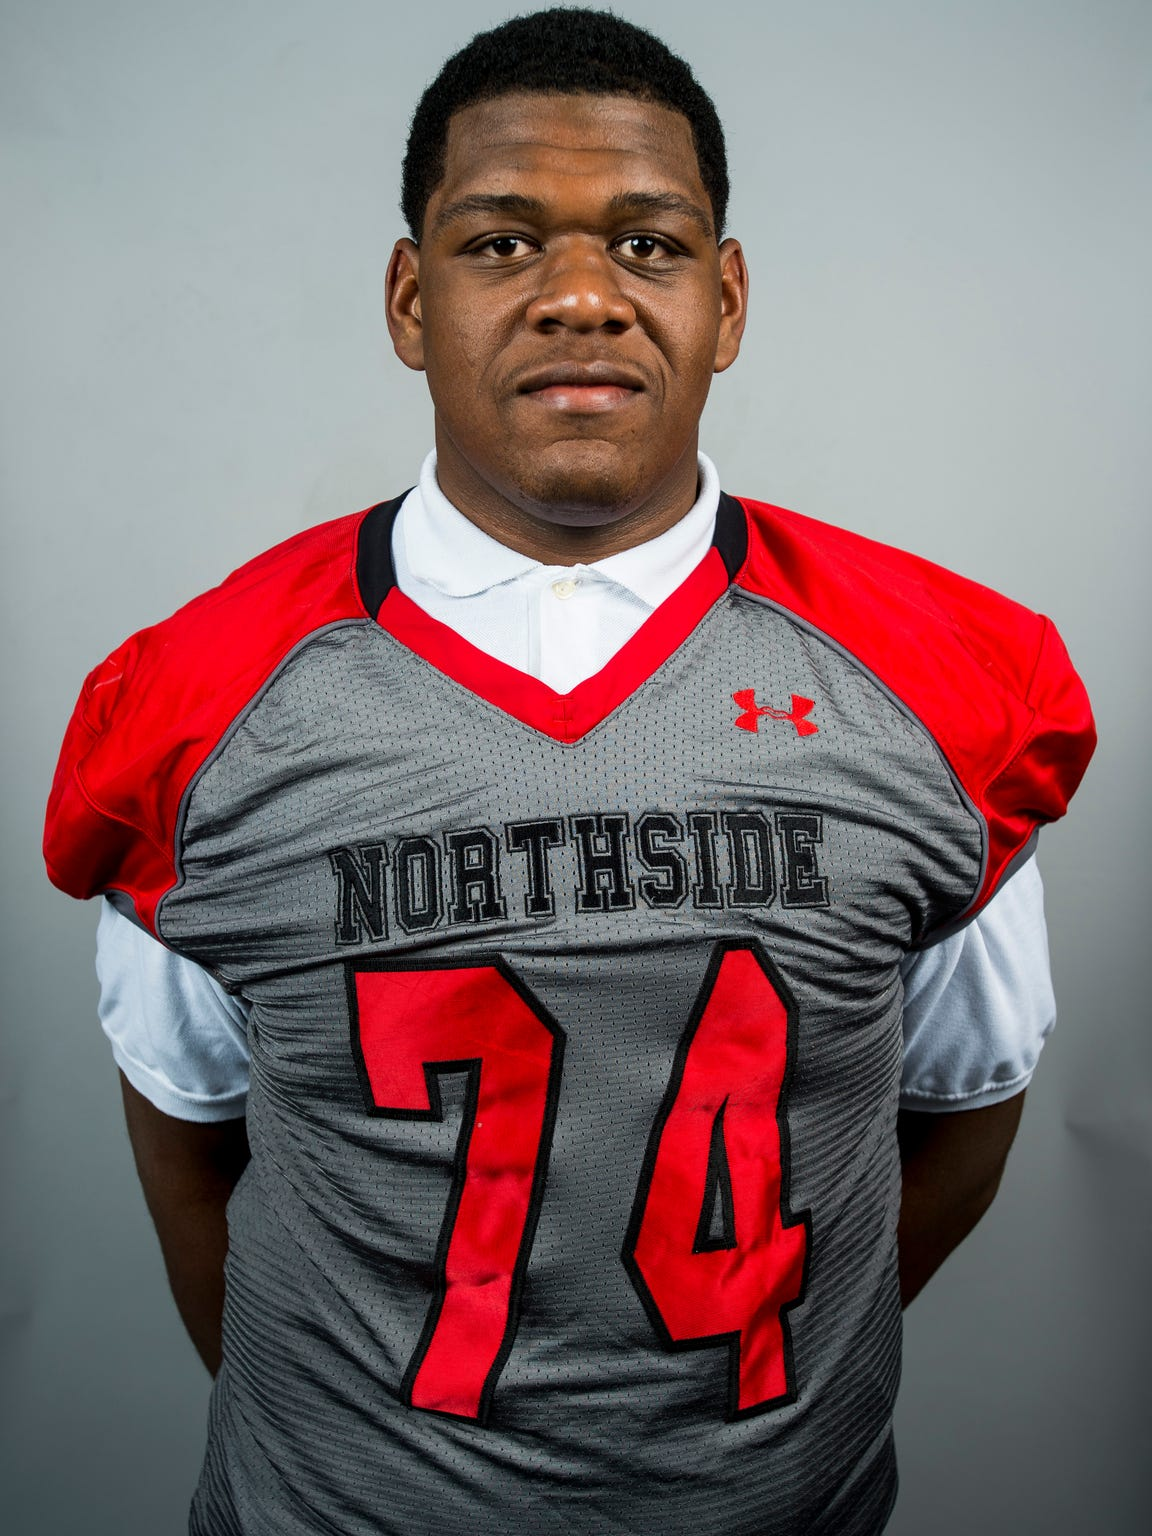 Northside offensive lineman O'Shea Dugas is considered